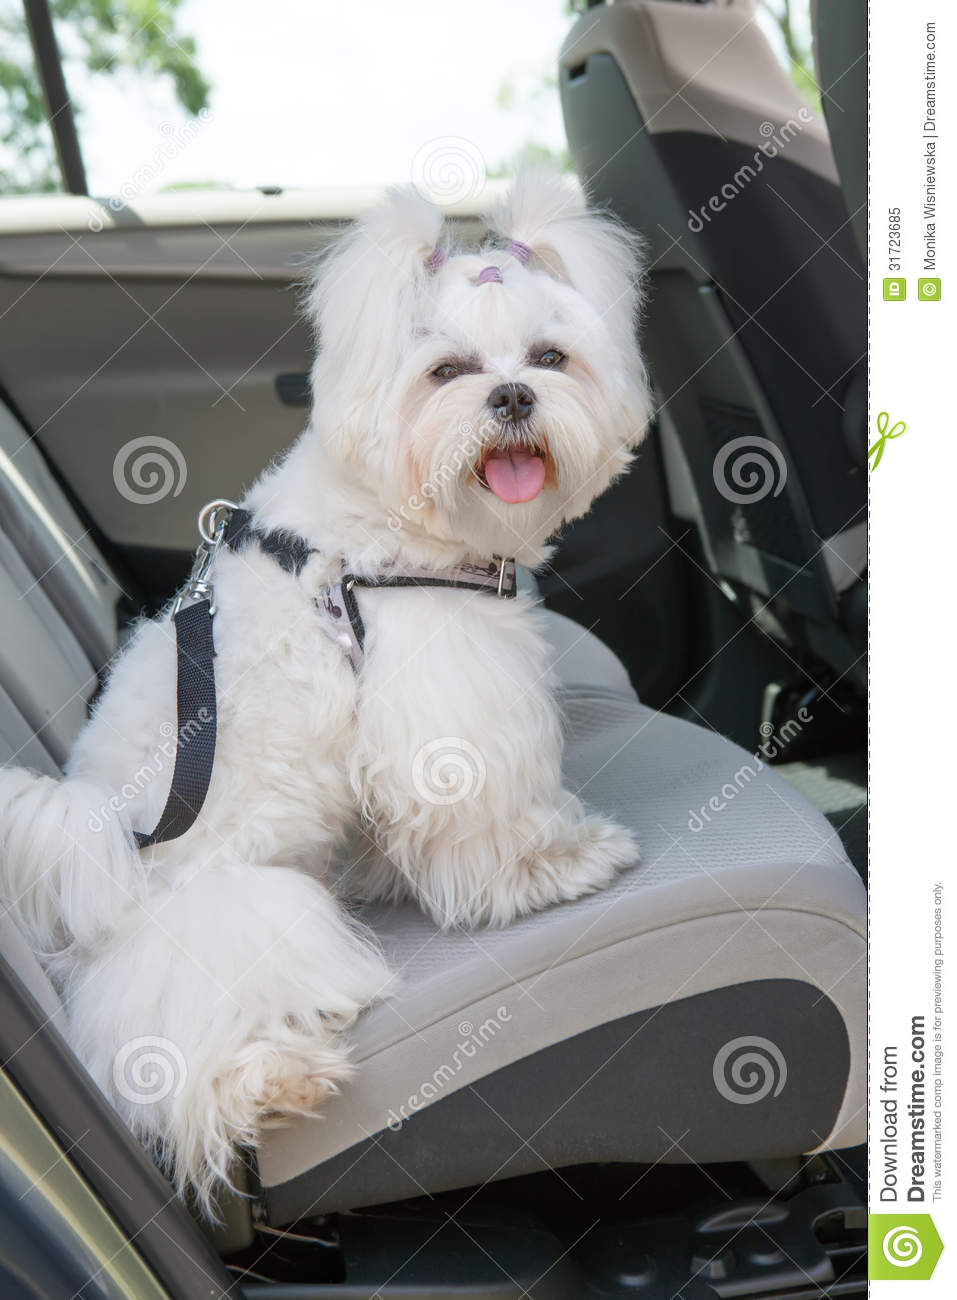 Dog Safe In The Car Stock Image Image Of Lying Inside